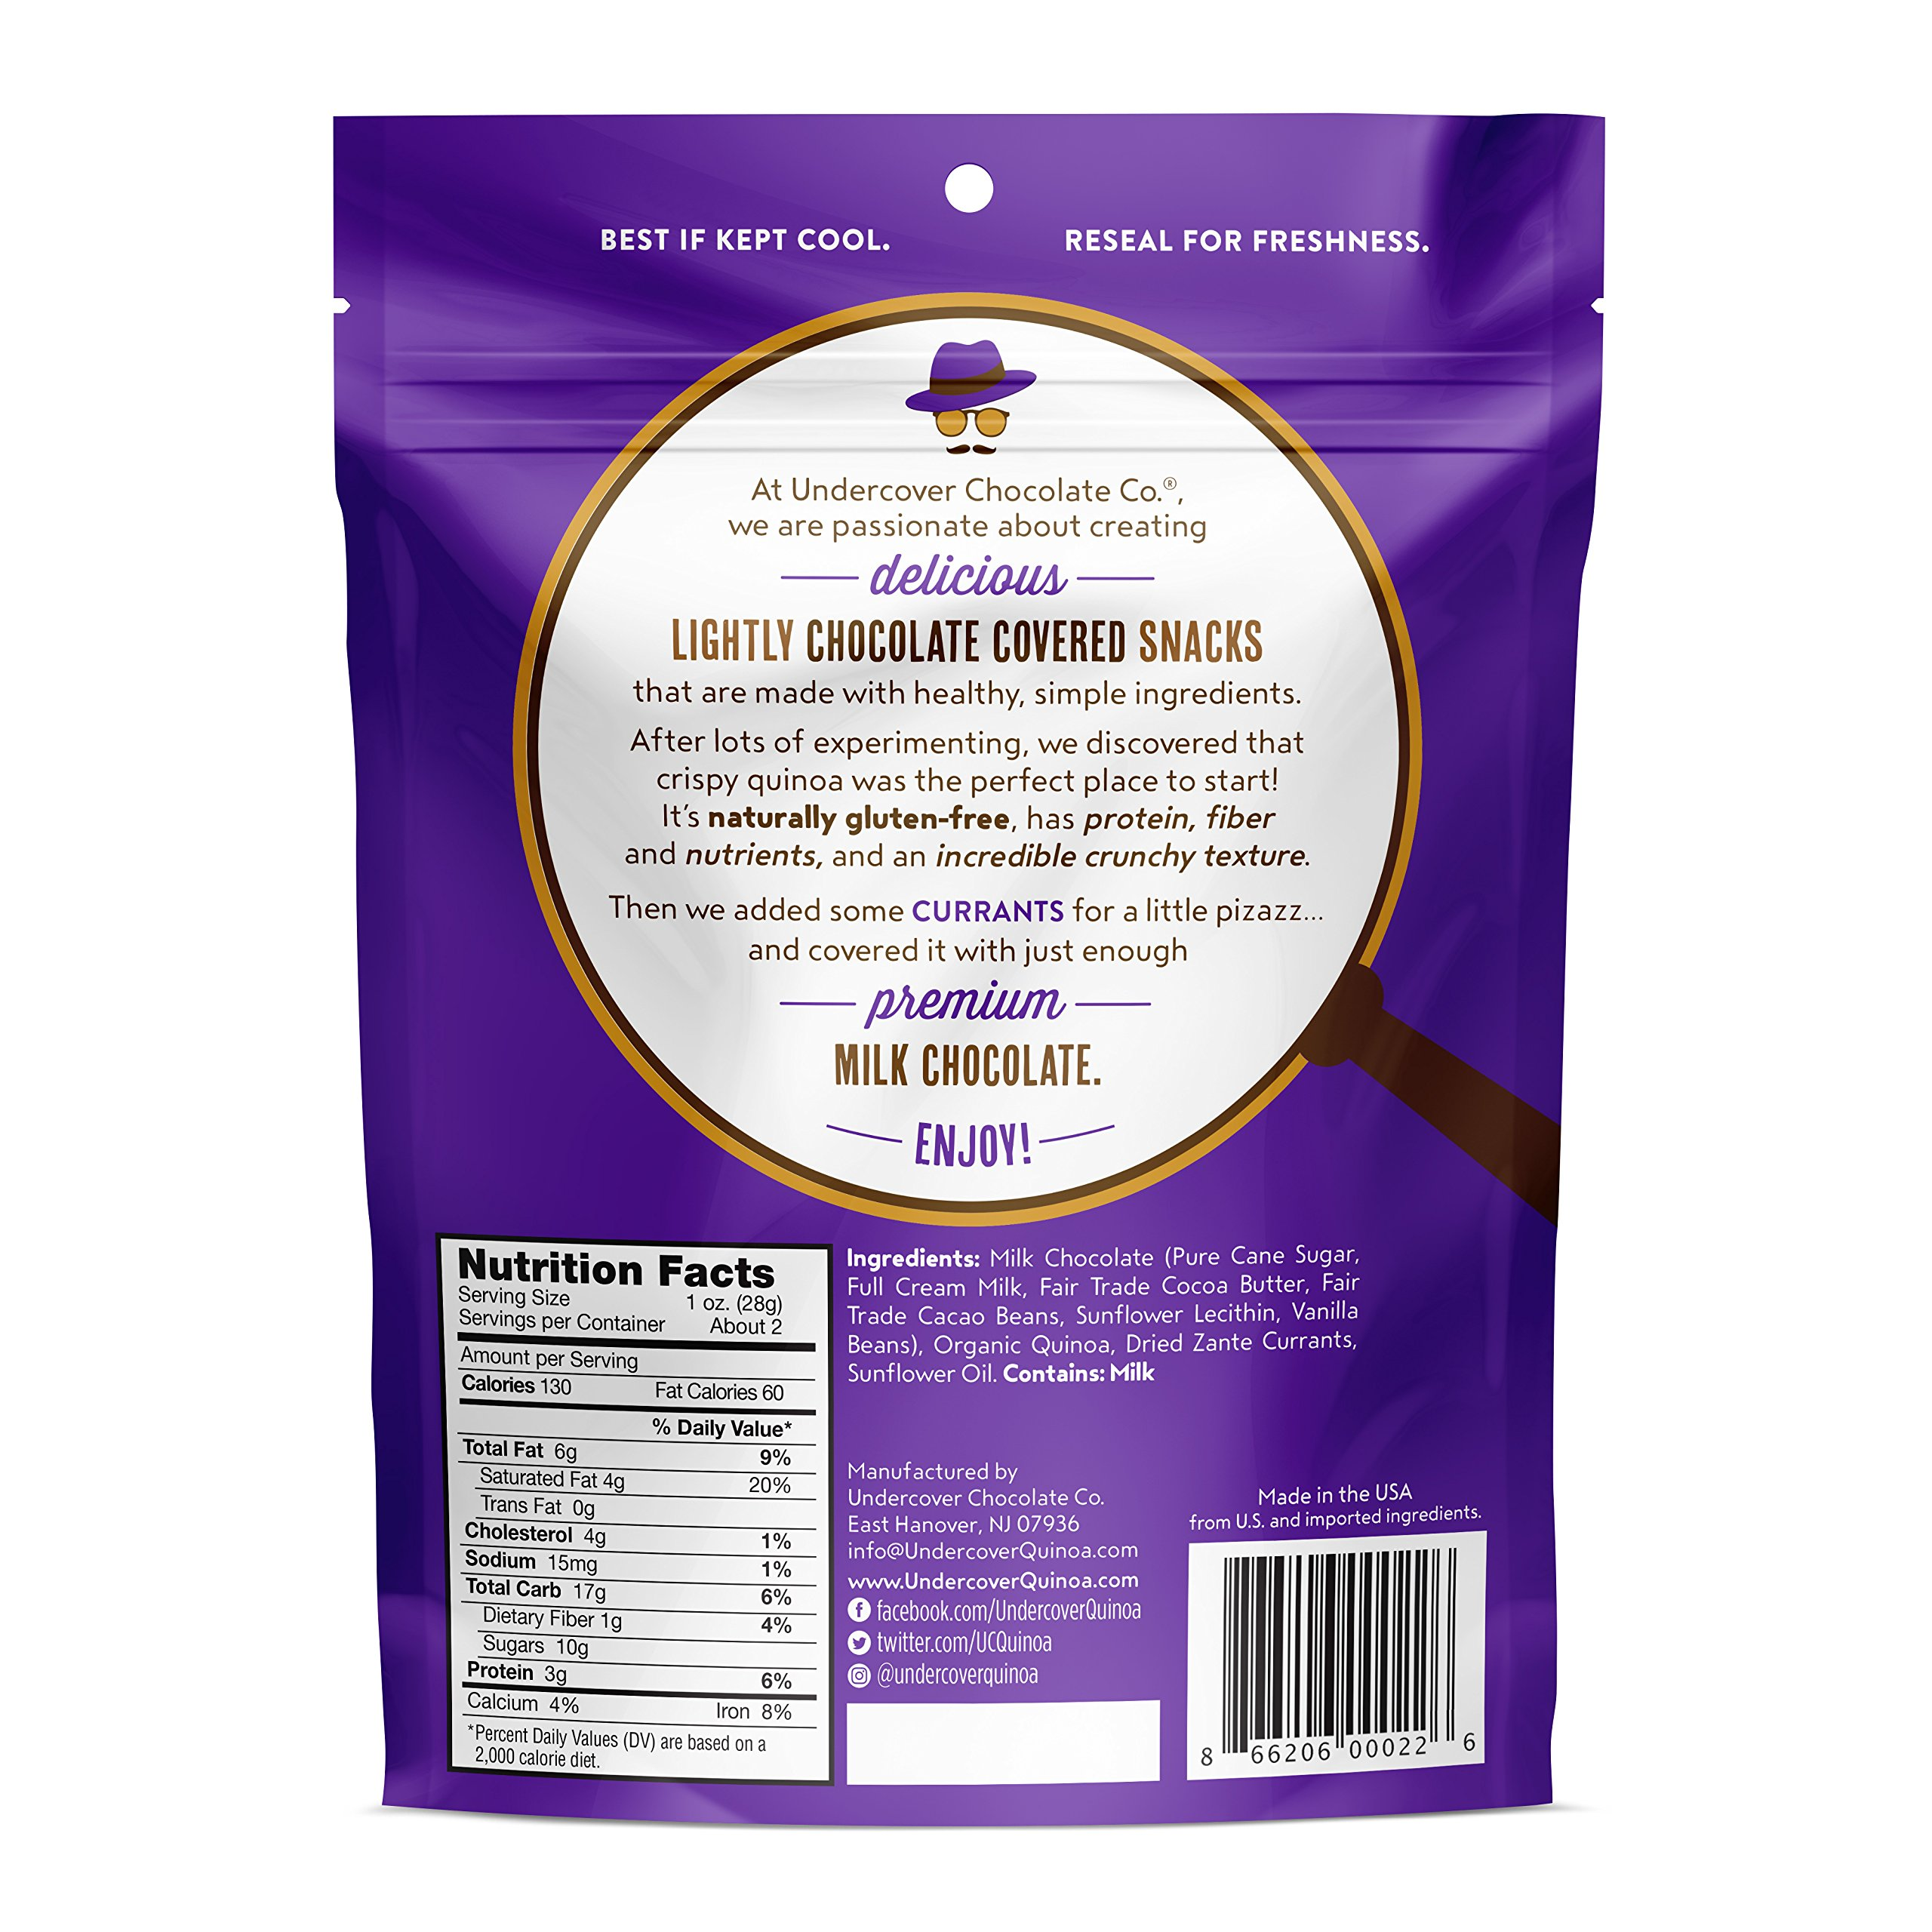 Undercover Quinoa Sampler Pack, Chocolate Crispy Quinoa Snack, Gluten-Free, 8 2 oz. bags: 2 Milk Chocolate, 2 Dark Chocolate+Sea Salt, 2 Milk Chocolate+Currants, 2 Dark Chocolate+Blueberries by Undercover Quinoa